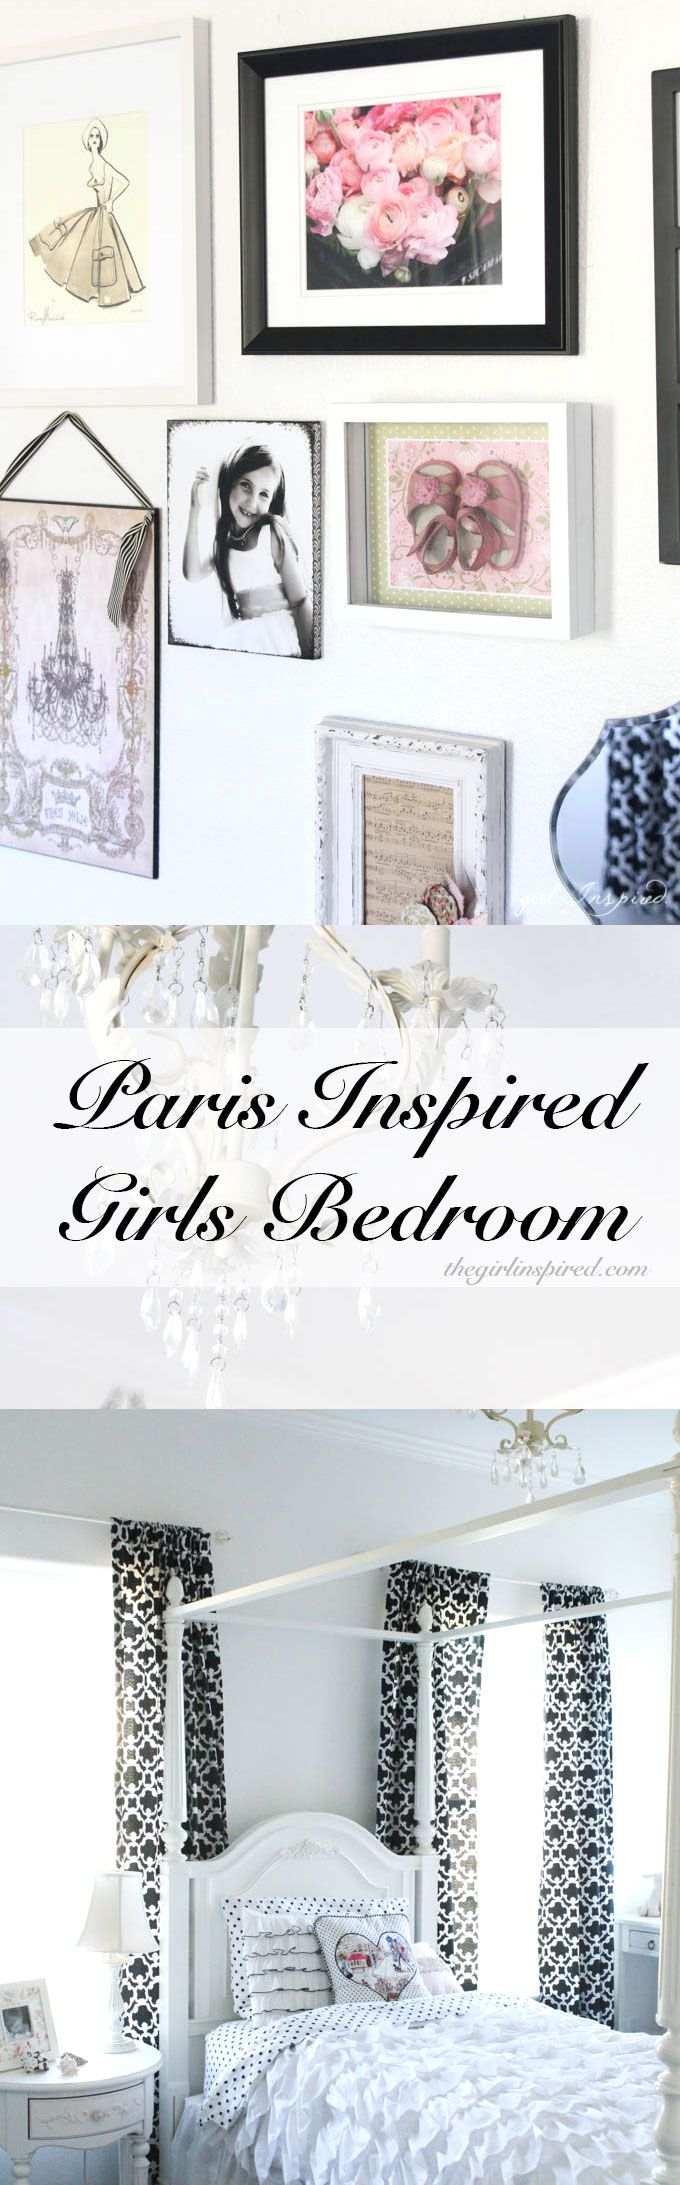 best 20 paris inspired bedroom ideas on pinterest paris bedroom